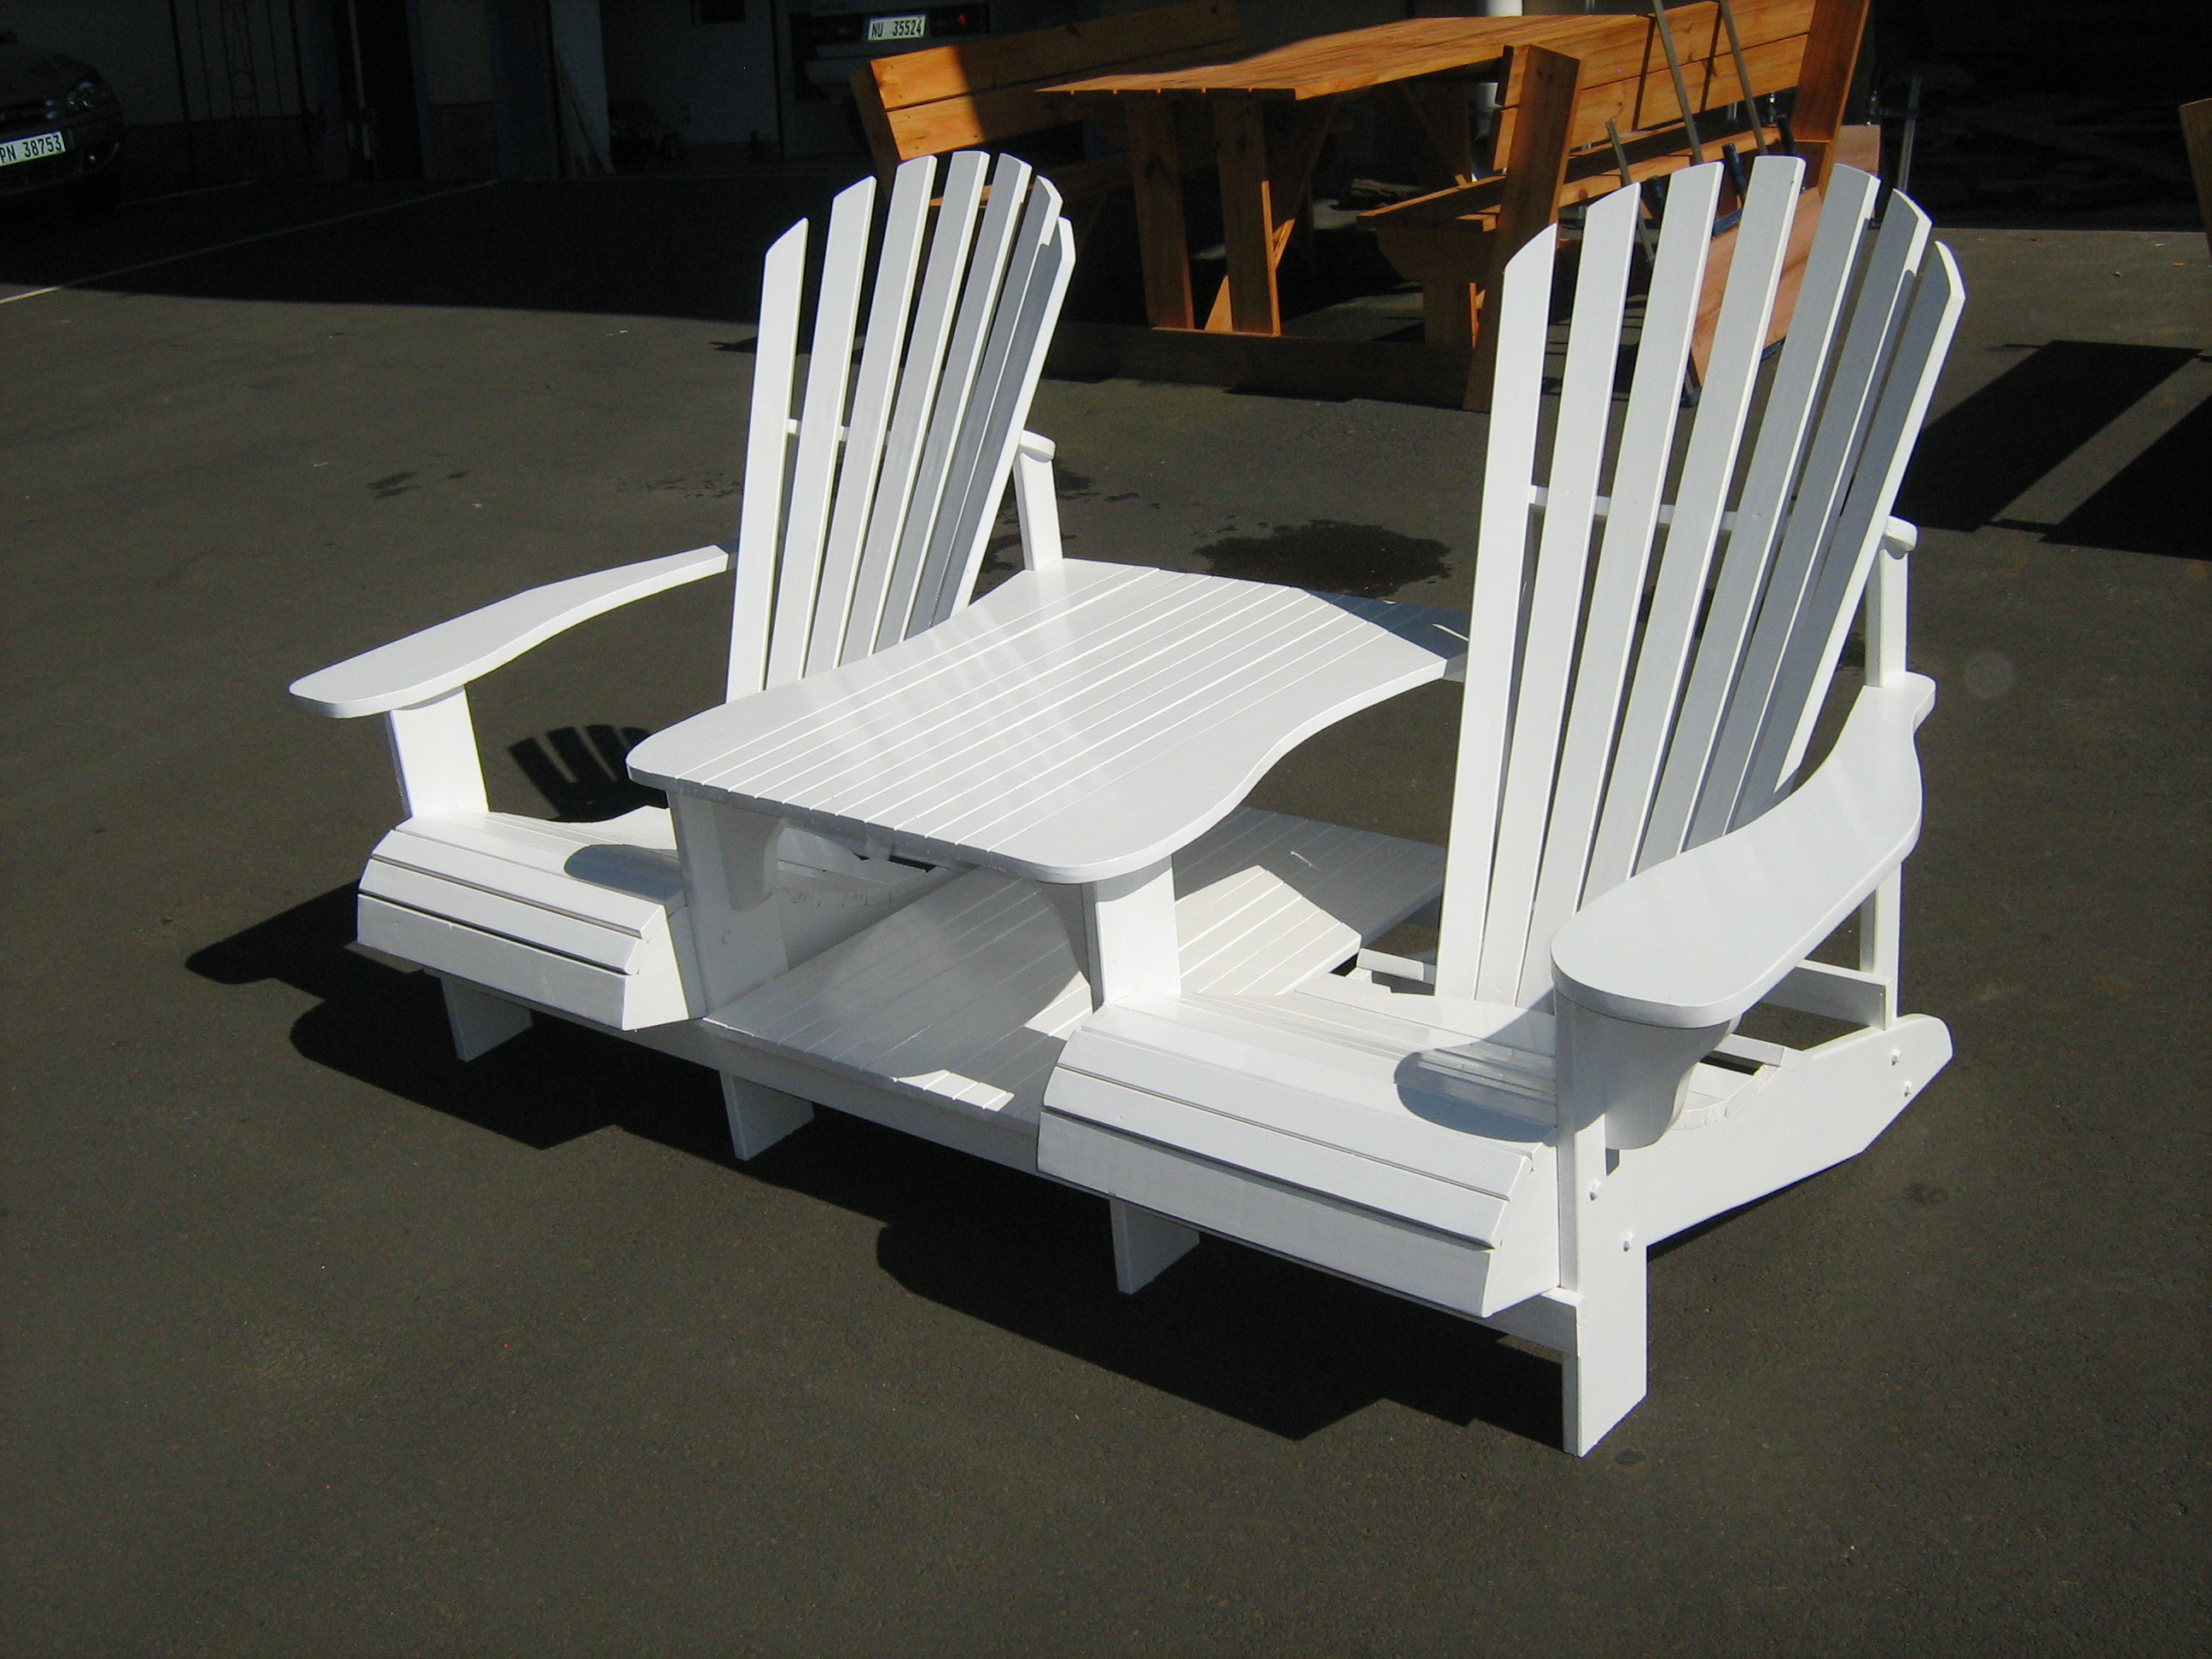 Pdf diy adirondack chair plans composite download 8 foot Composite adirondack chairs